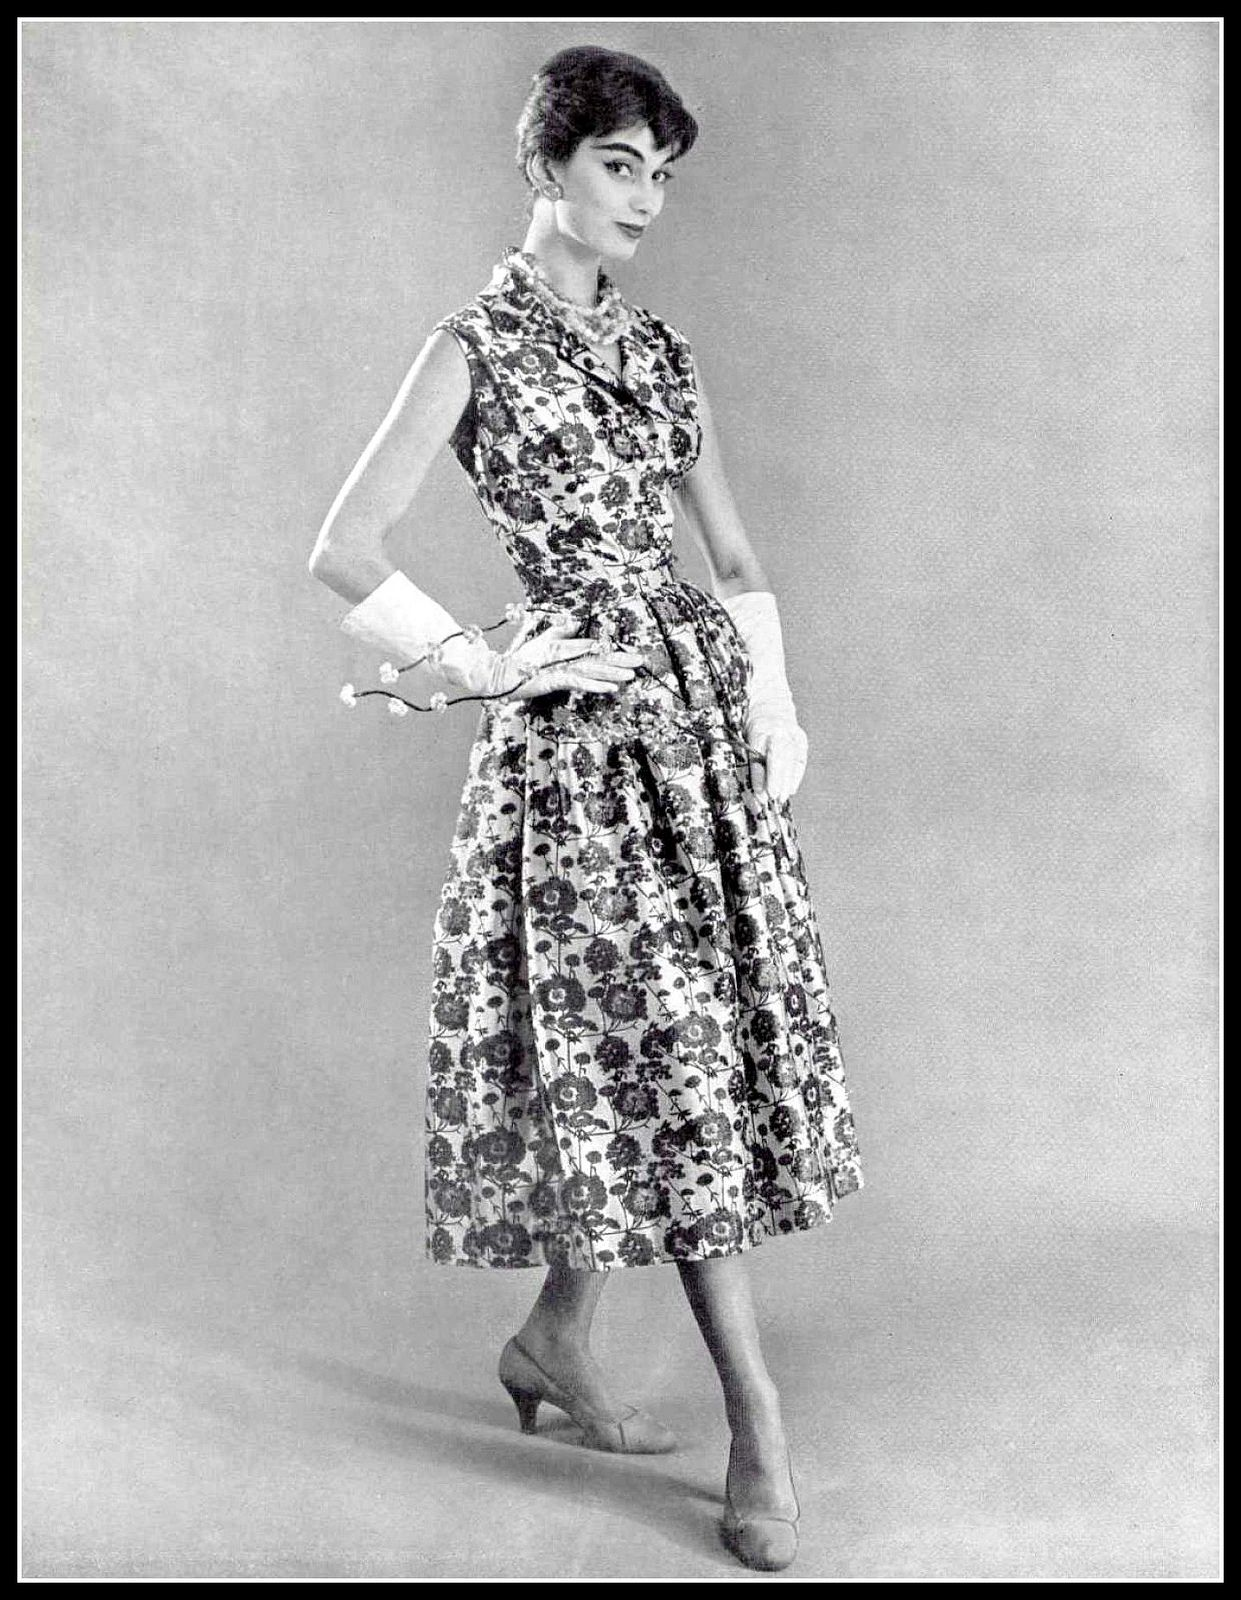 Marie-Hélène in floral print dress by Christian Dior, photo by Guy Arsac. 1955